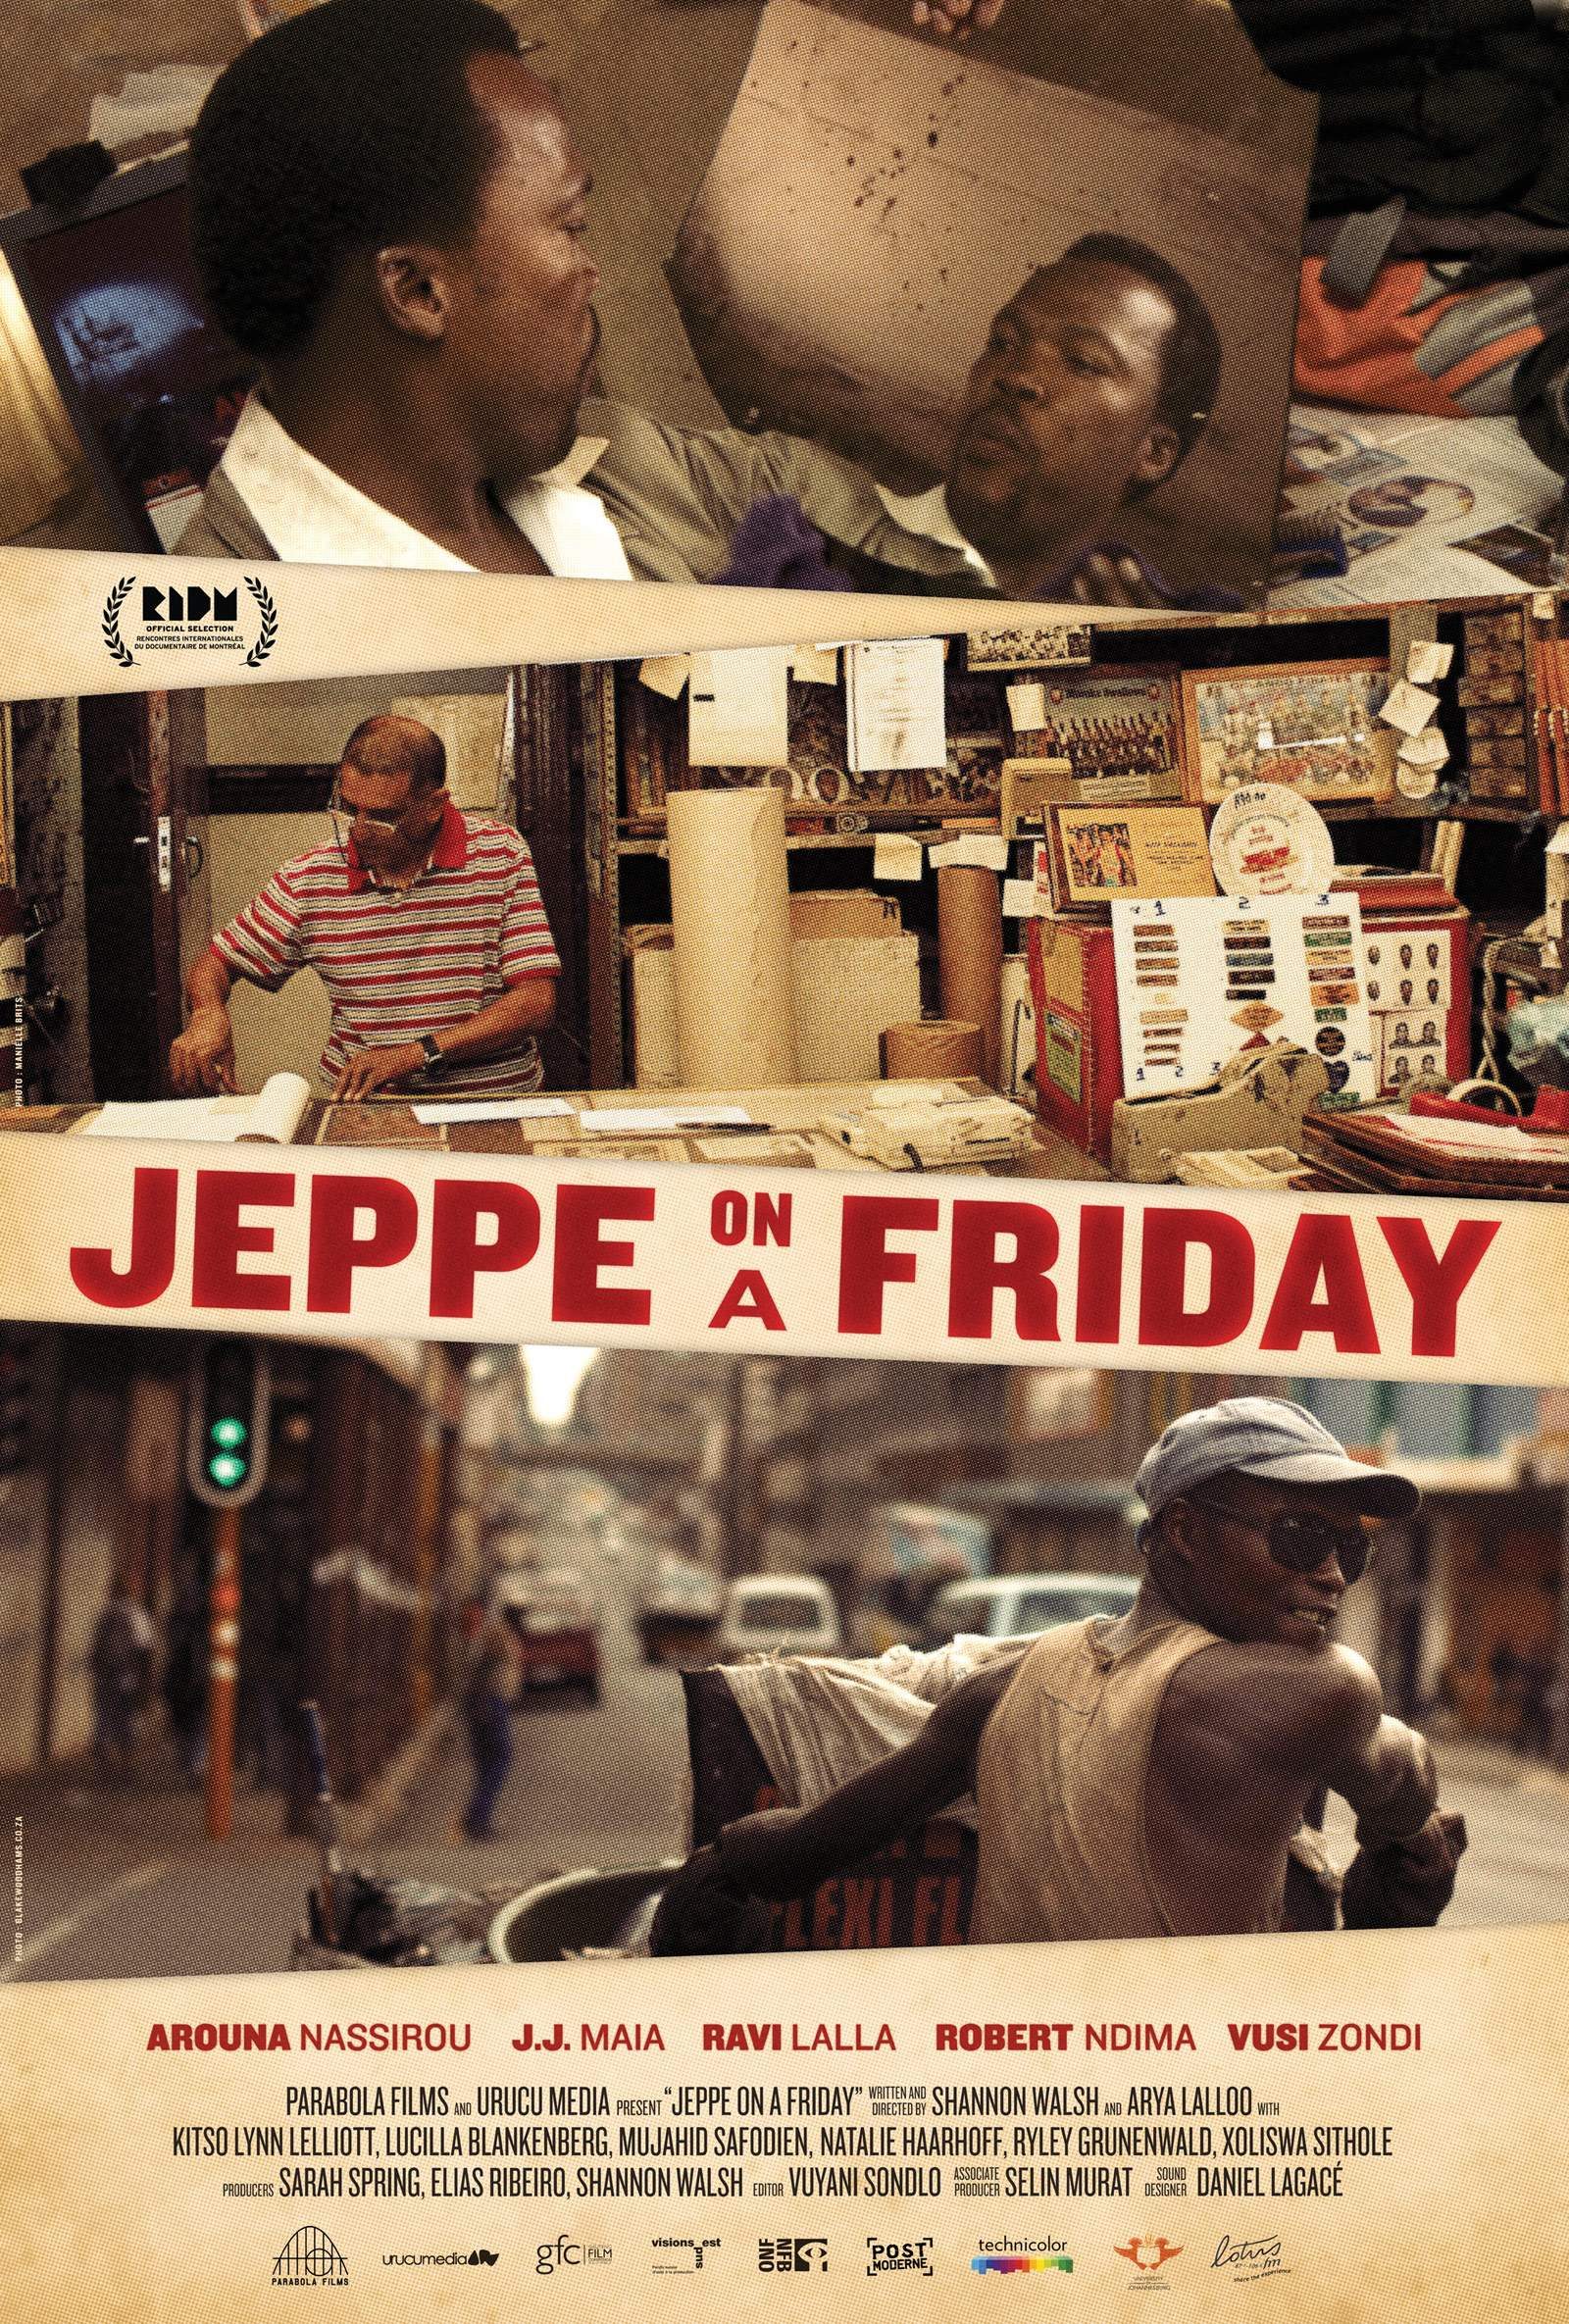 jeppe_final_poster_oct22_for-web copy